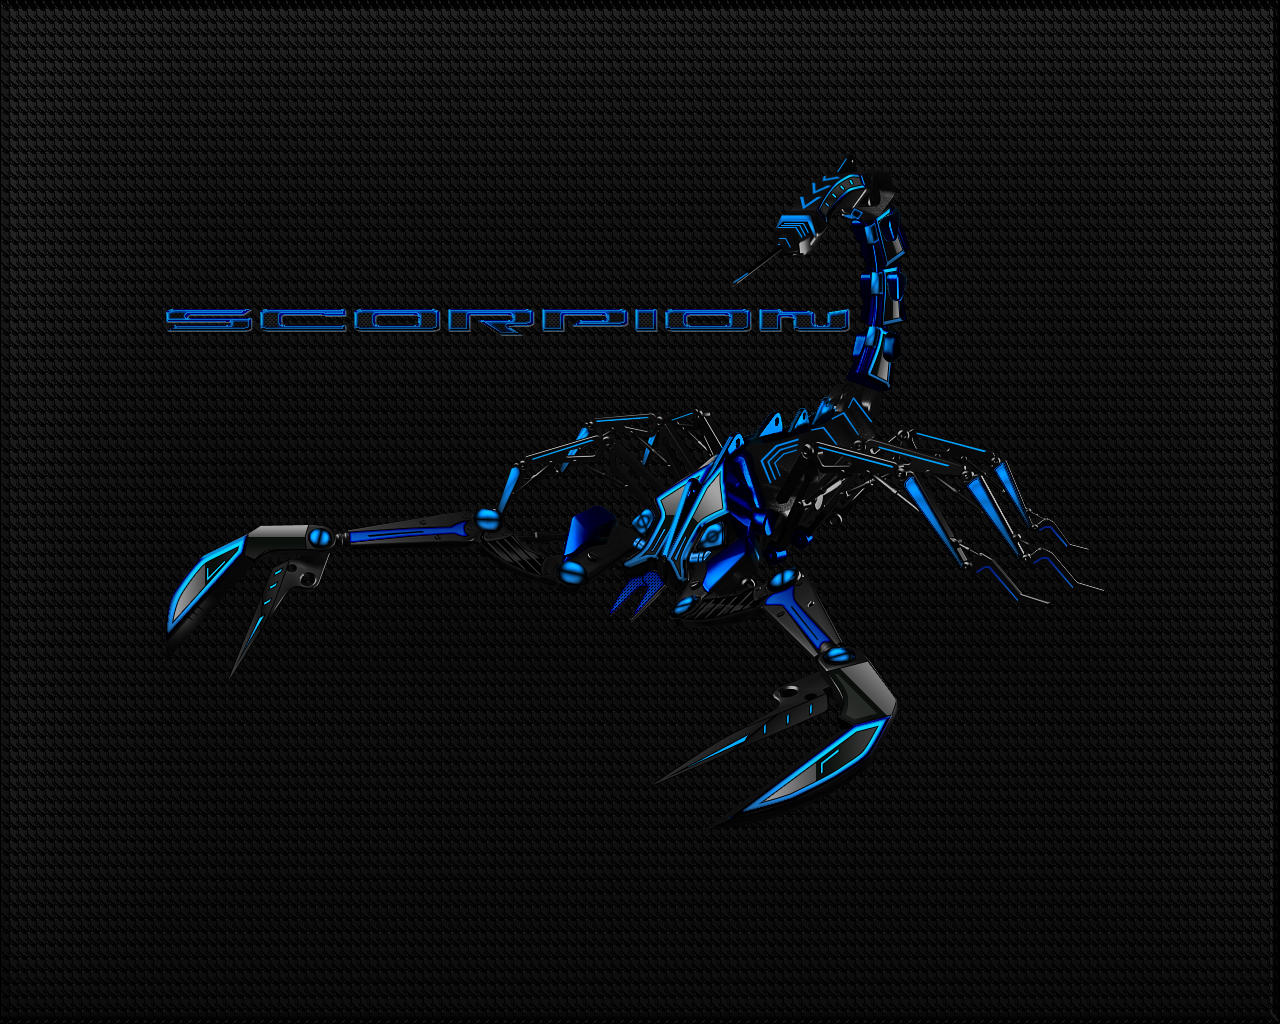 Black-Blue Scorpion Wallpaper by Micro31337